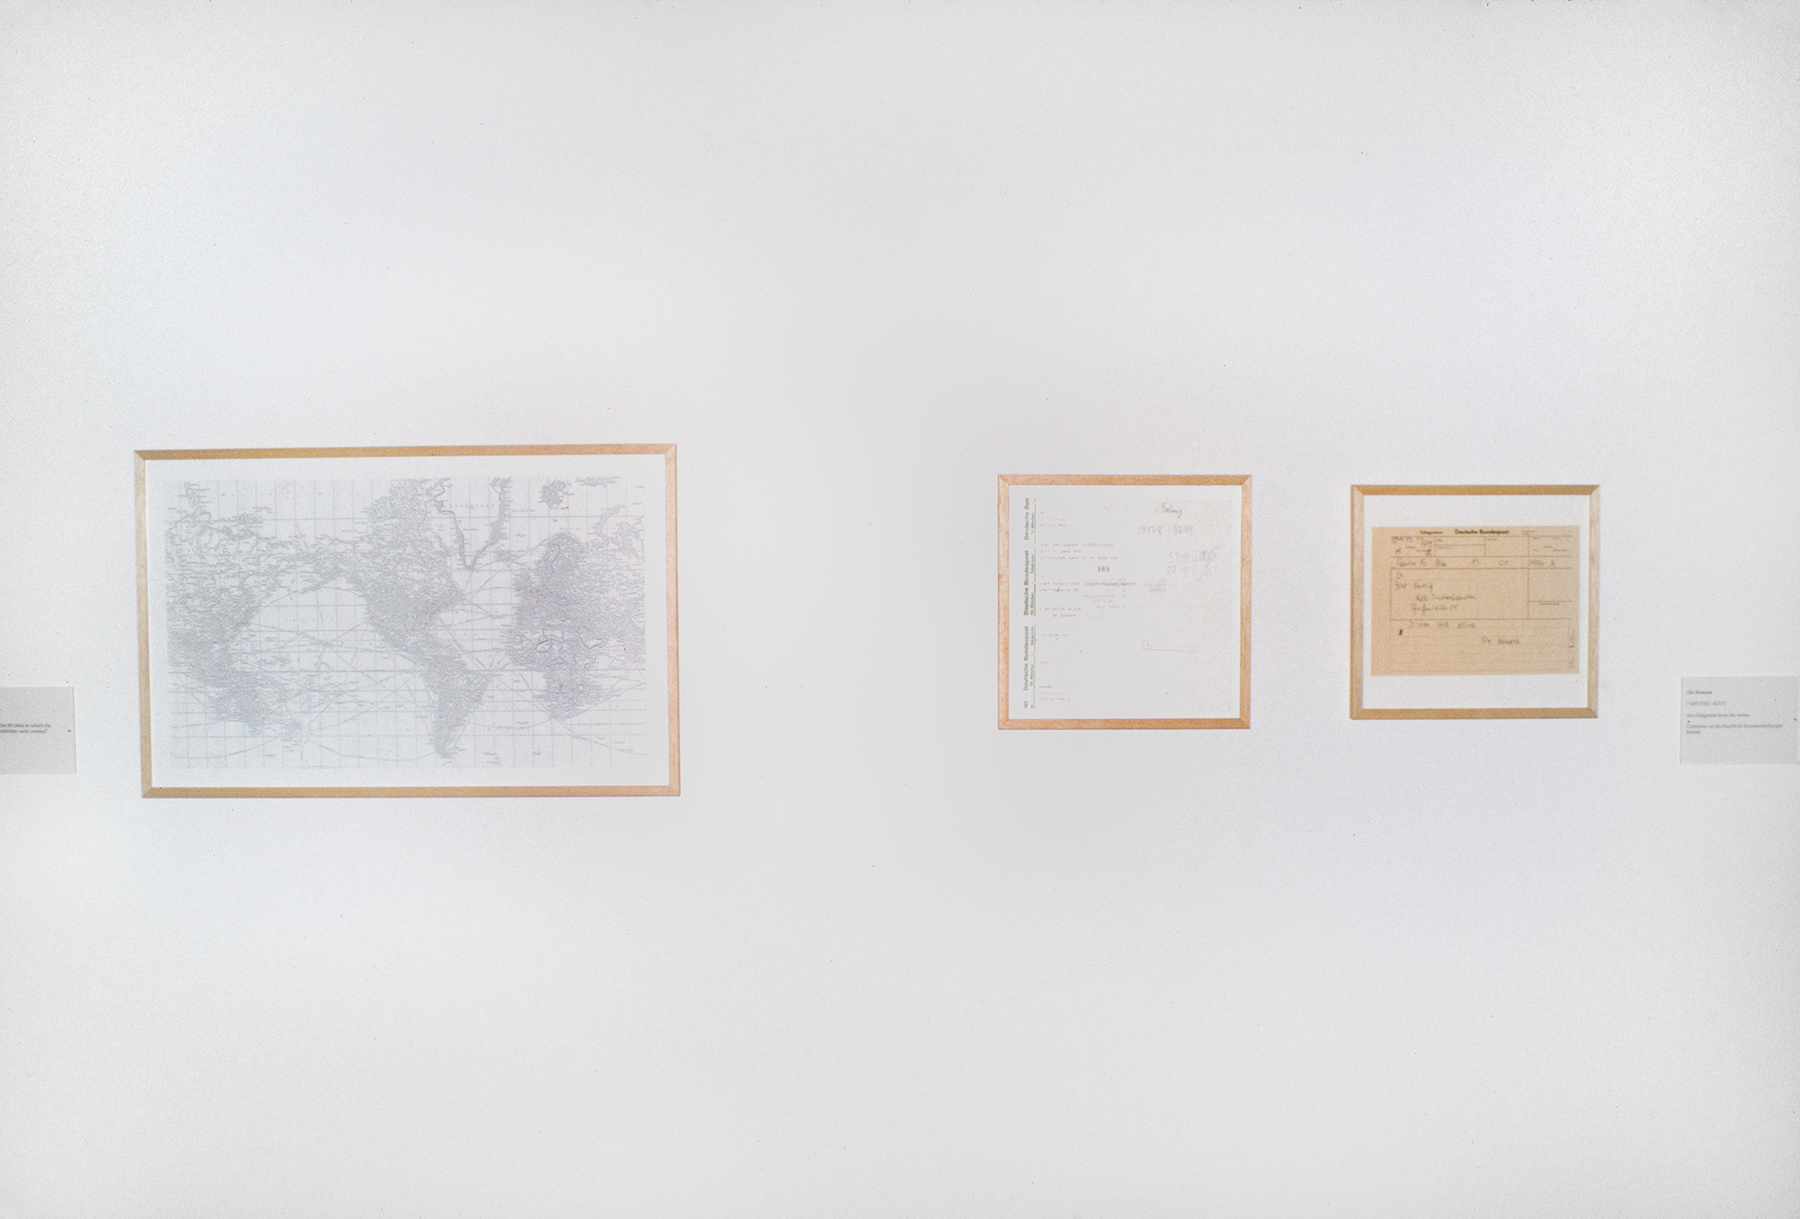 A map and other documents framed and hung on a wall